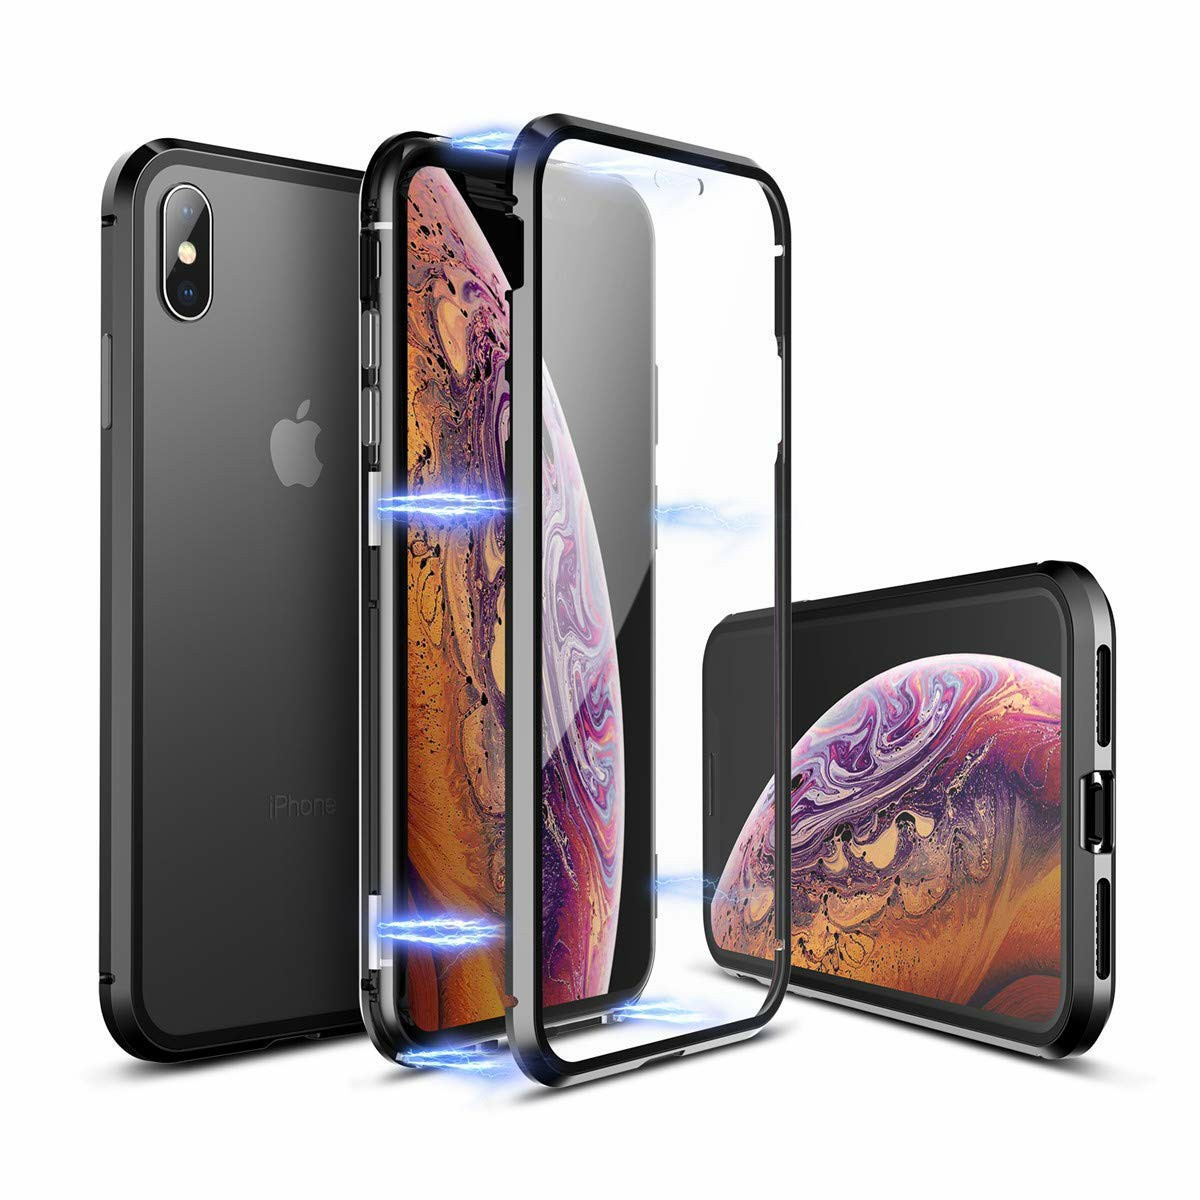 Metal Edge Phone Cover Tempered Glass Back Case and Screen Protector for iPhone XS - Transparent Black